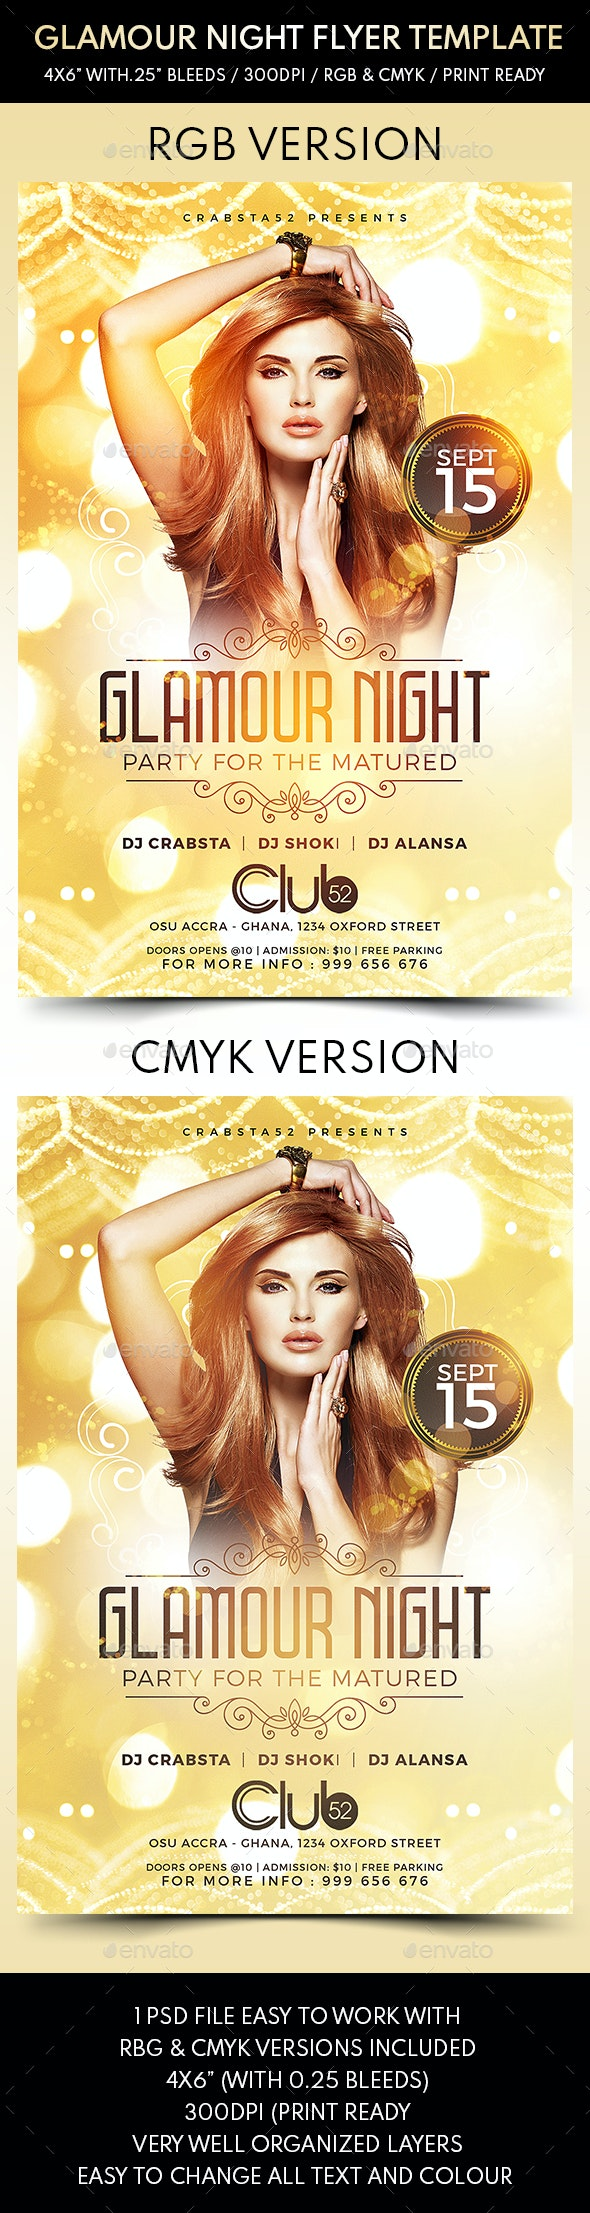 Glamour Night Flyer Template - Flyers Print Templates